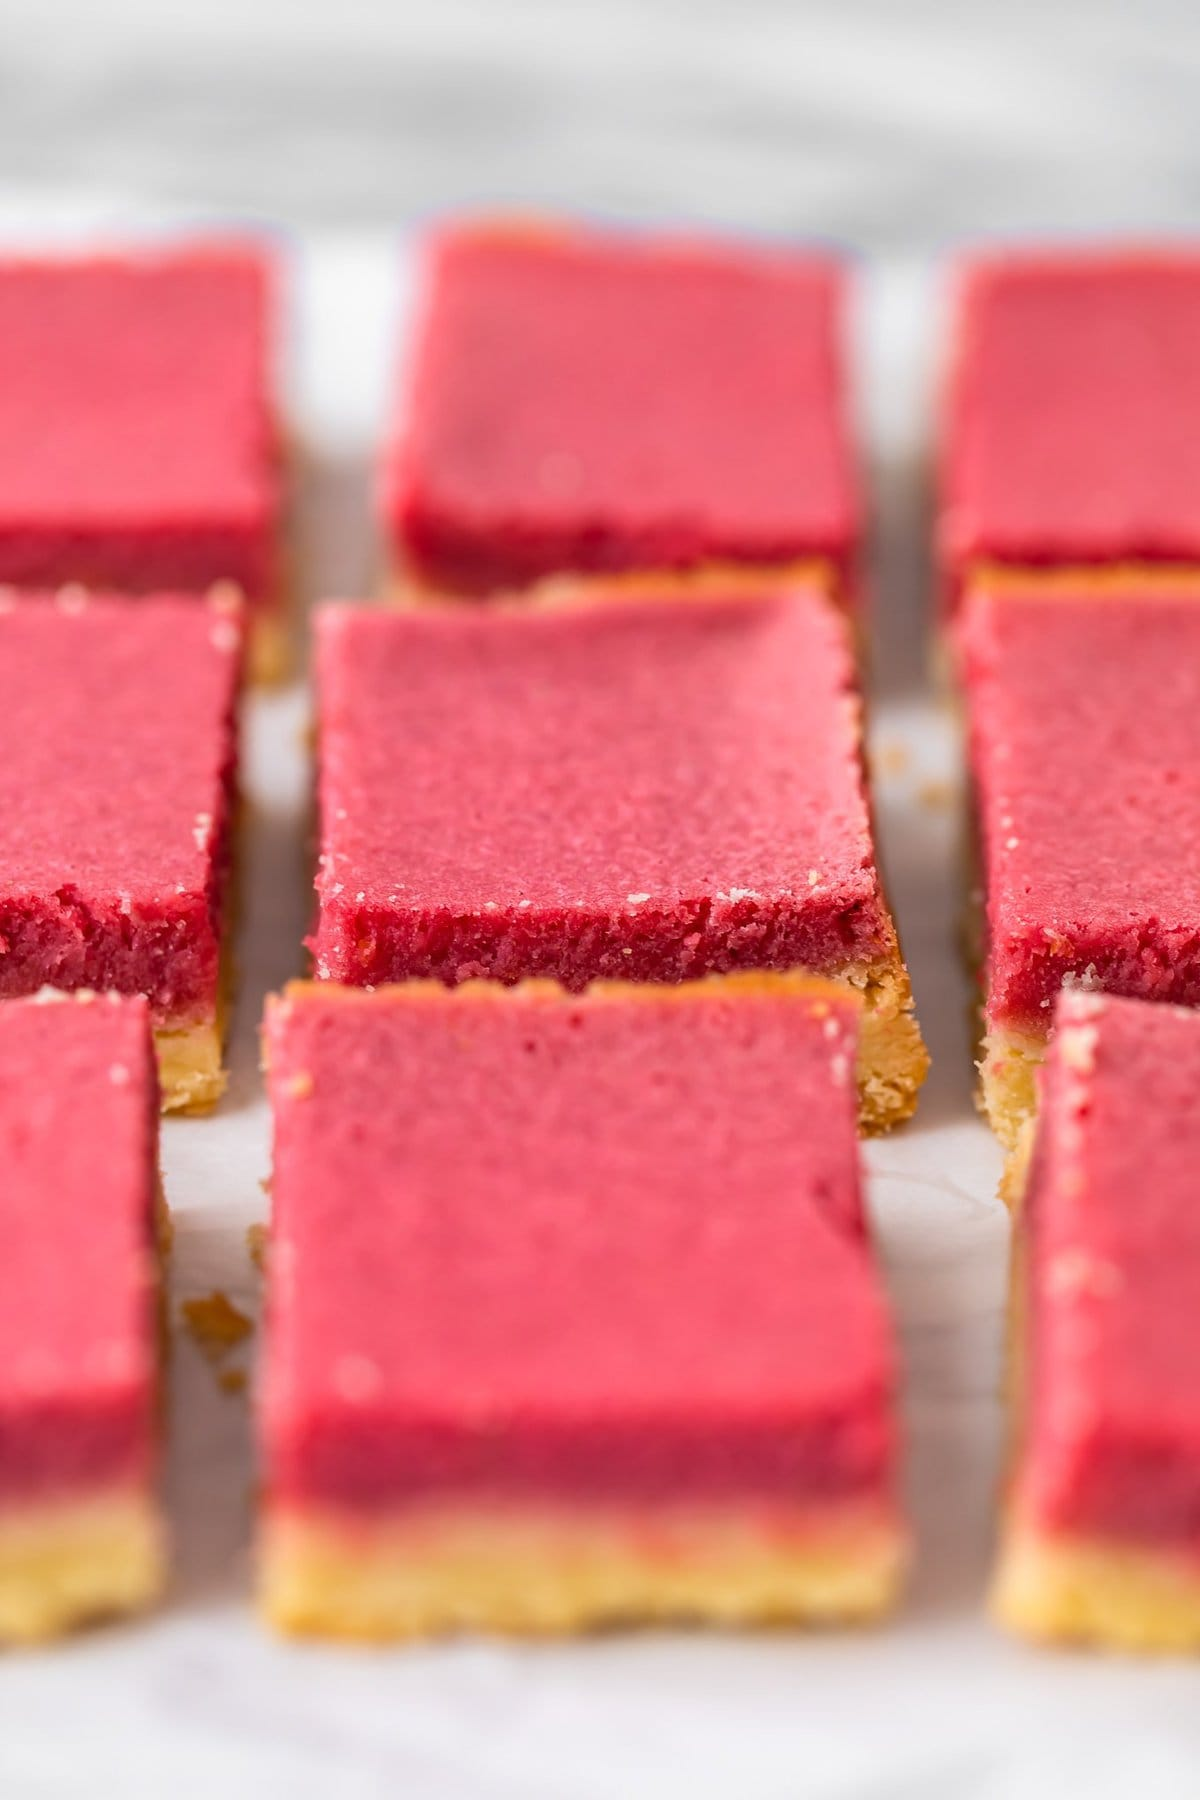 raspberry lemon bars sliced into squares